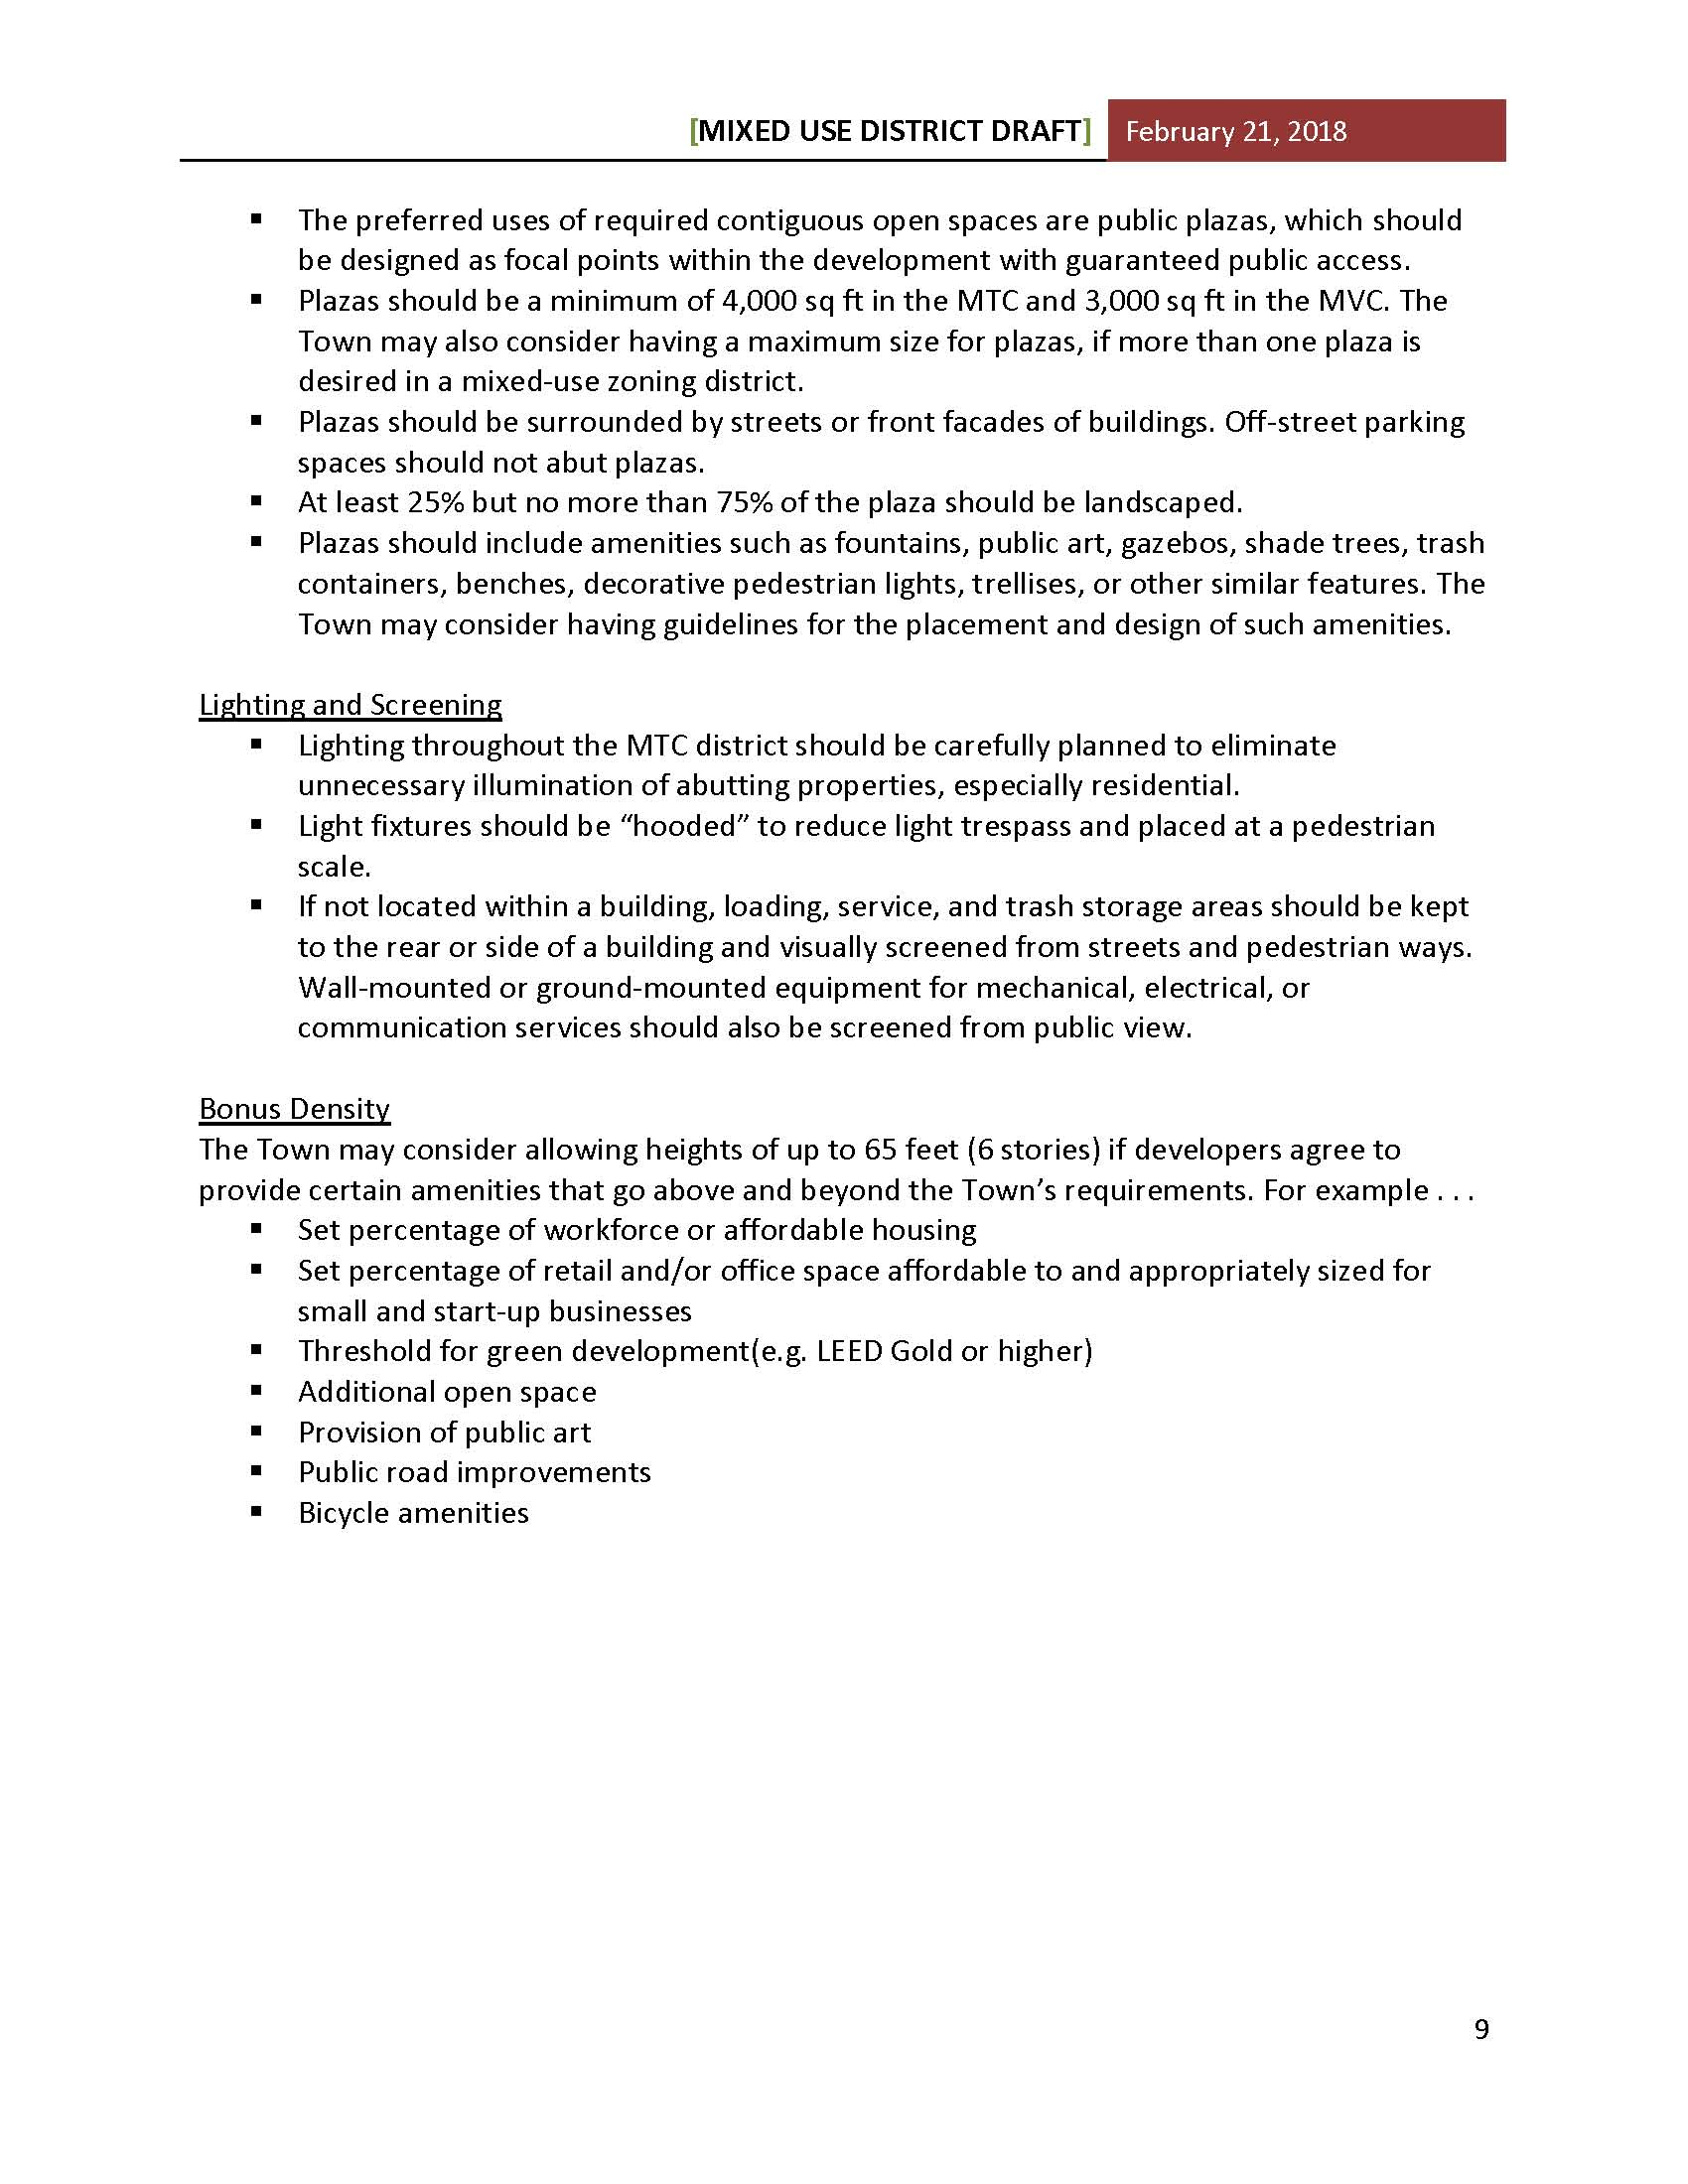 Mixed-Use Descriptions and Dimensions - Draft - 2-21-18_Page_9.jpg